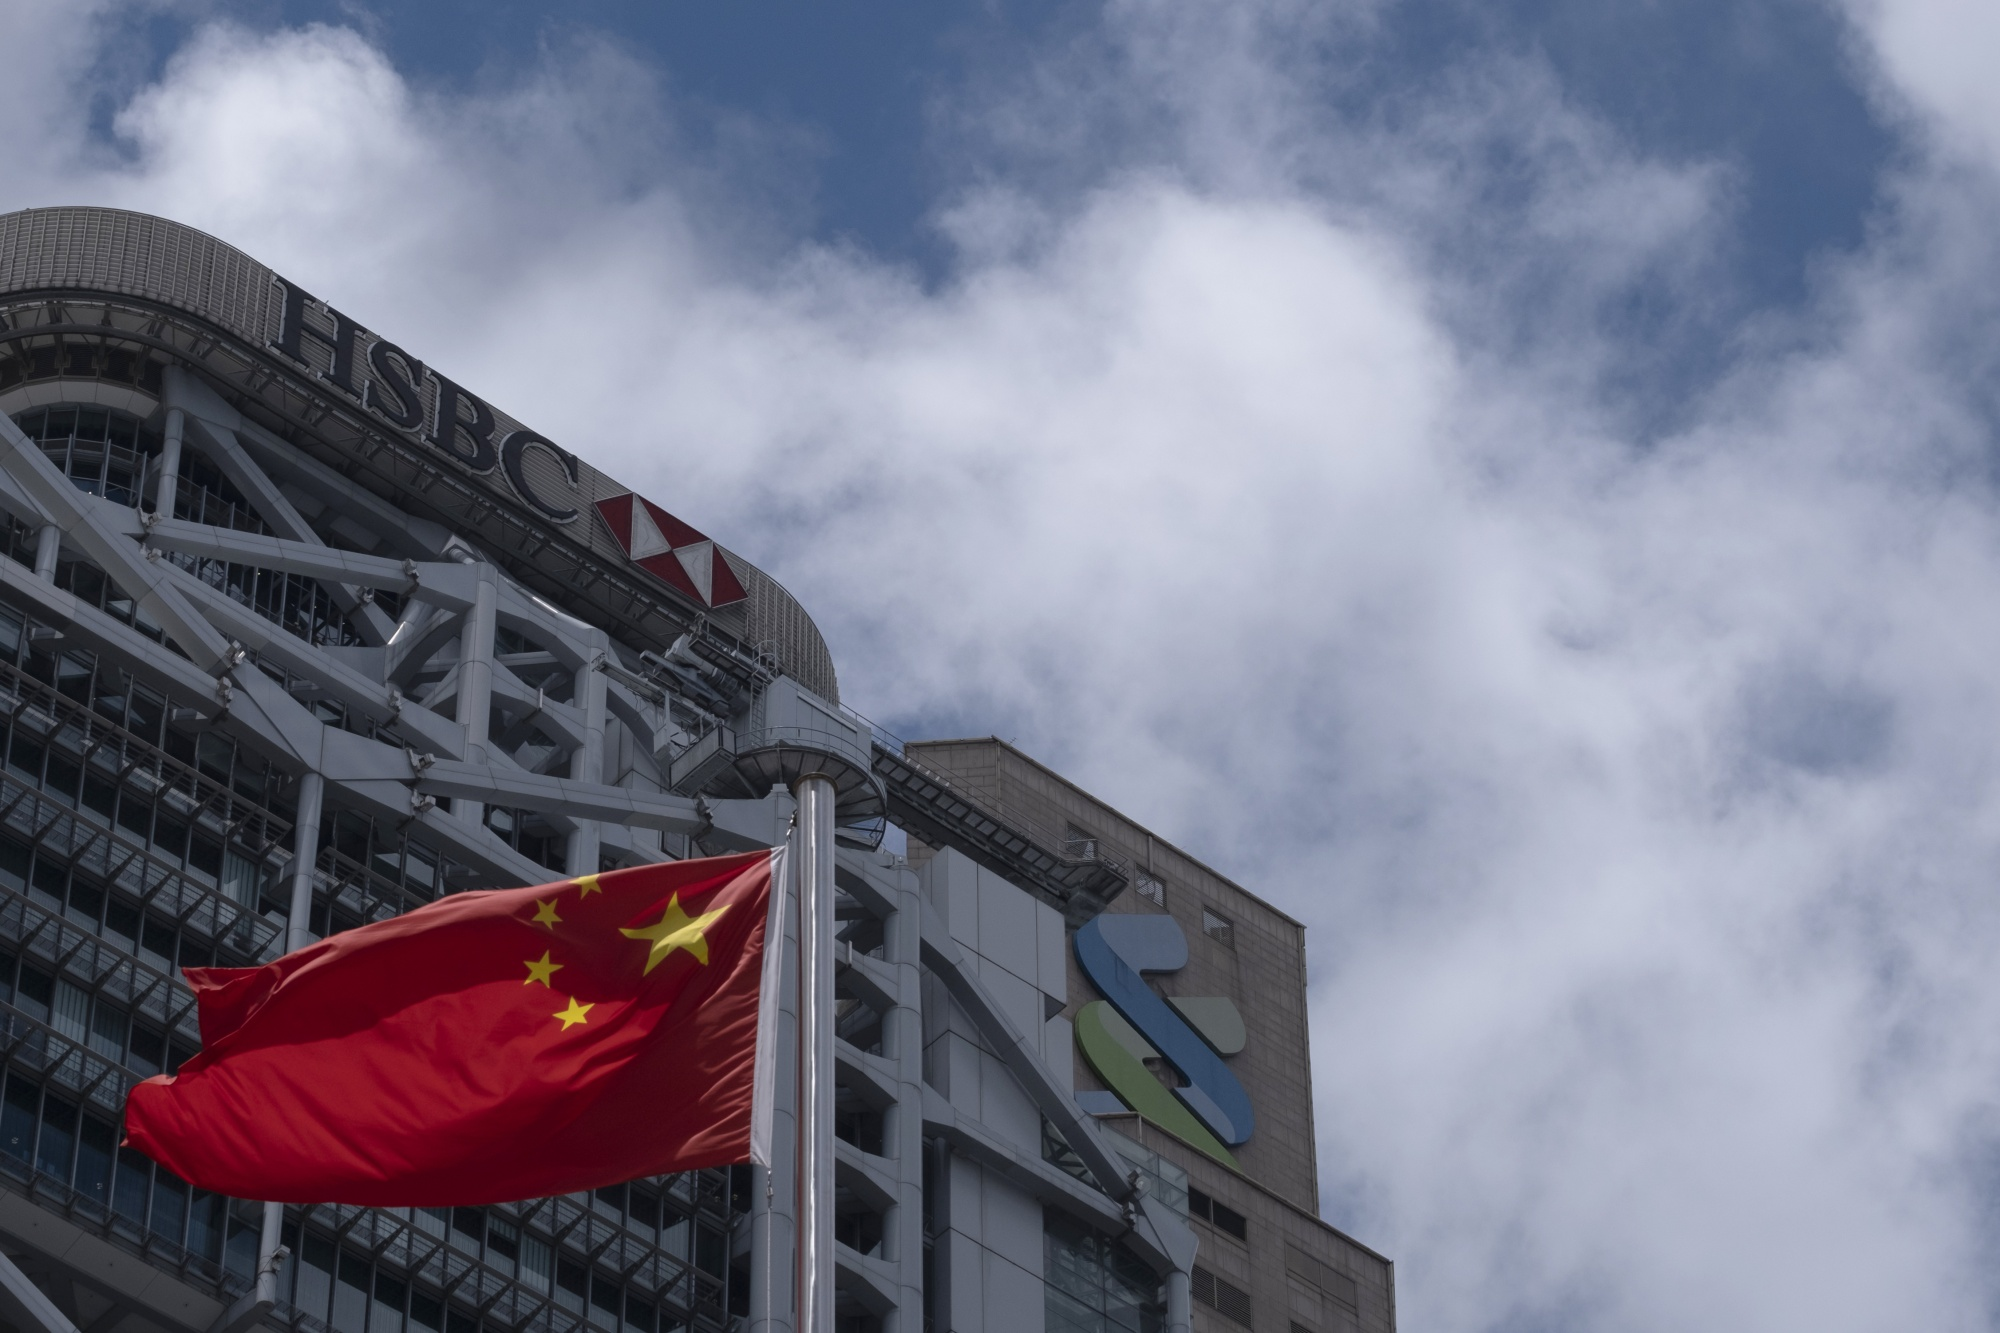 The flag of China flies near the HSBC Holdings Plc building, left, in Hong Kong.